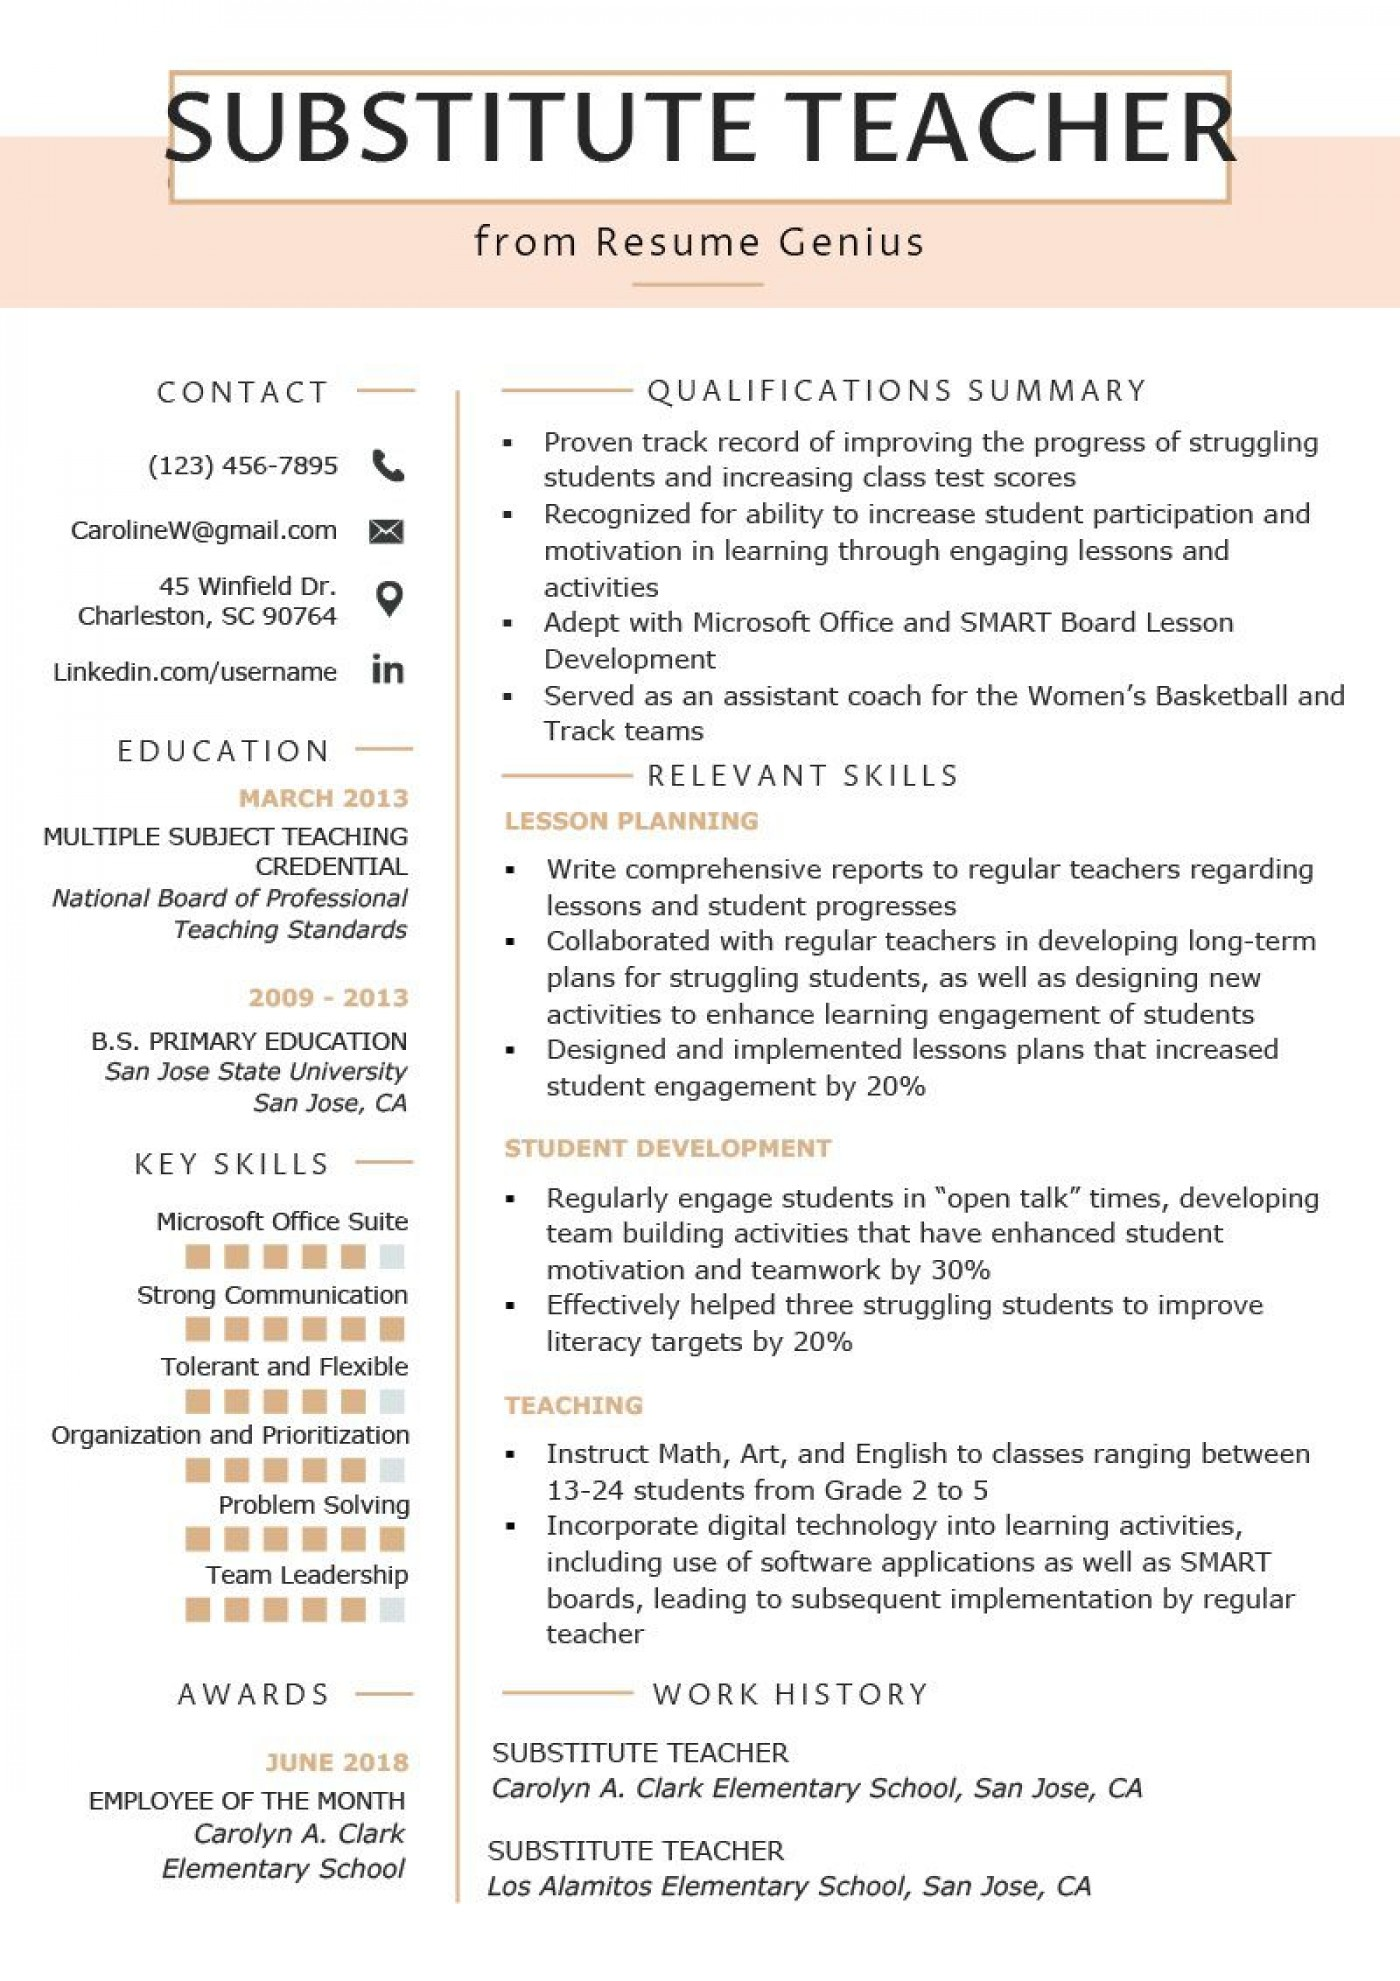 002 Stunning Resume Template For Teaching High Def  Example Assistant Cv Uk Job1400